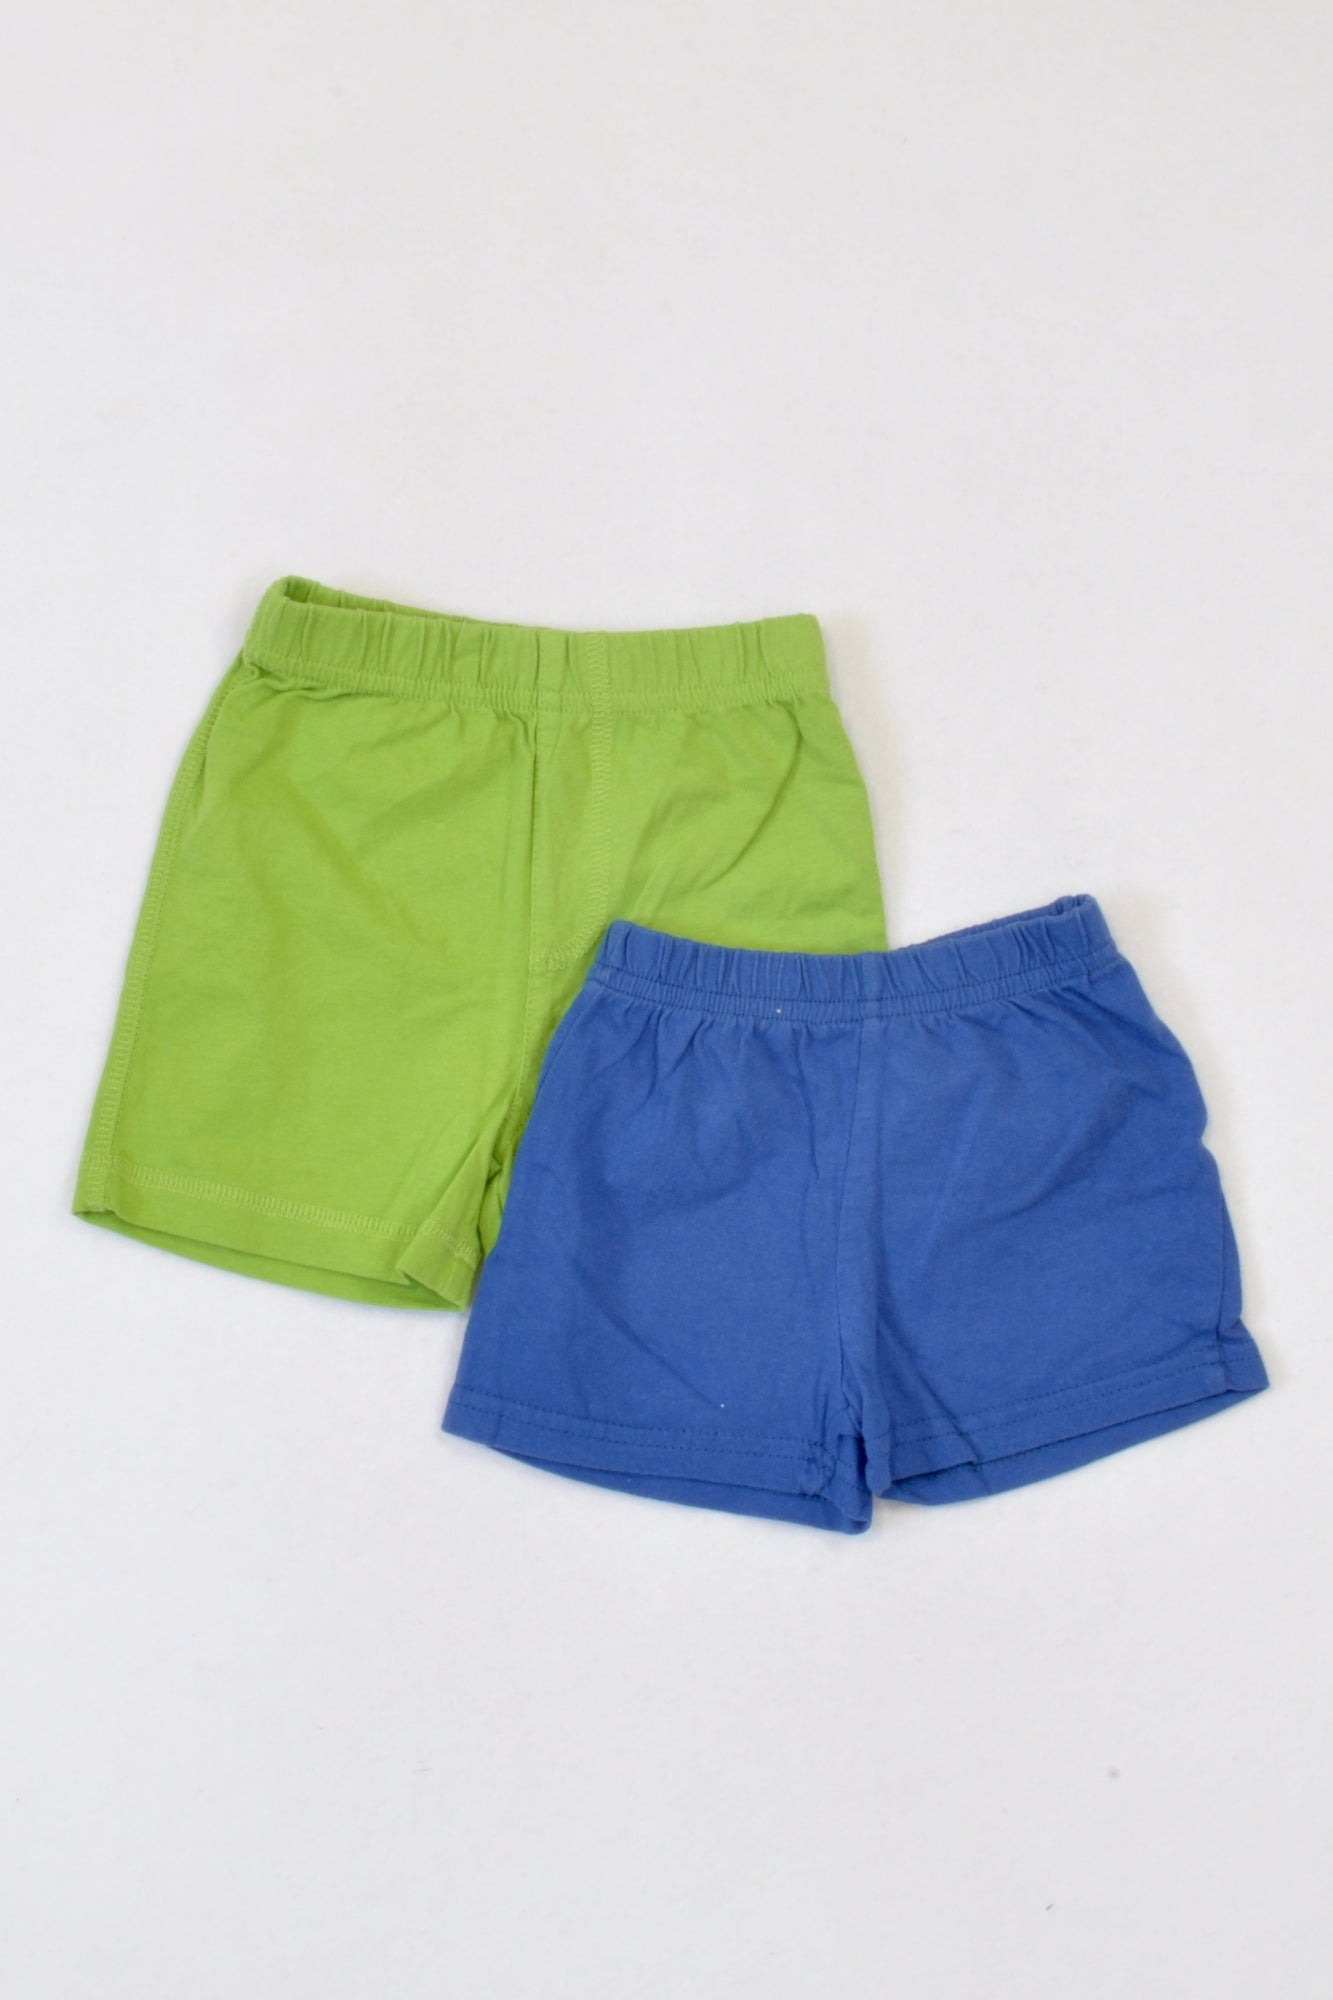 Pick 'n Pay 2 Pack Blue & Green Shorts Boys 3-6 months